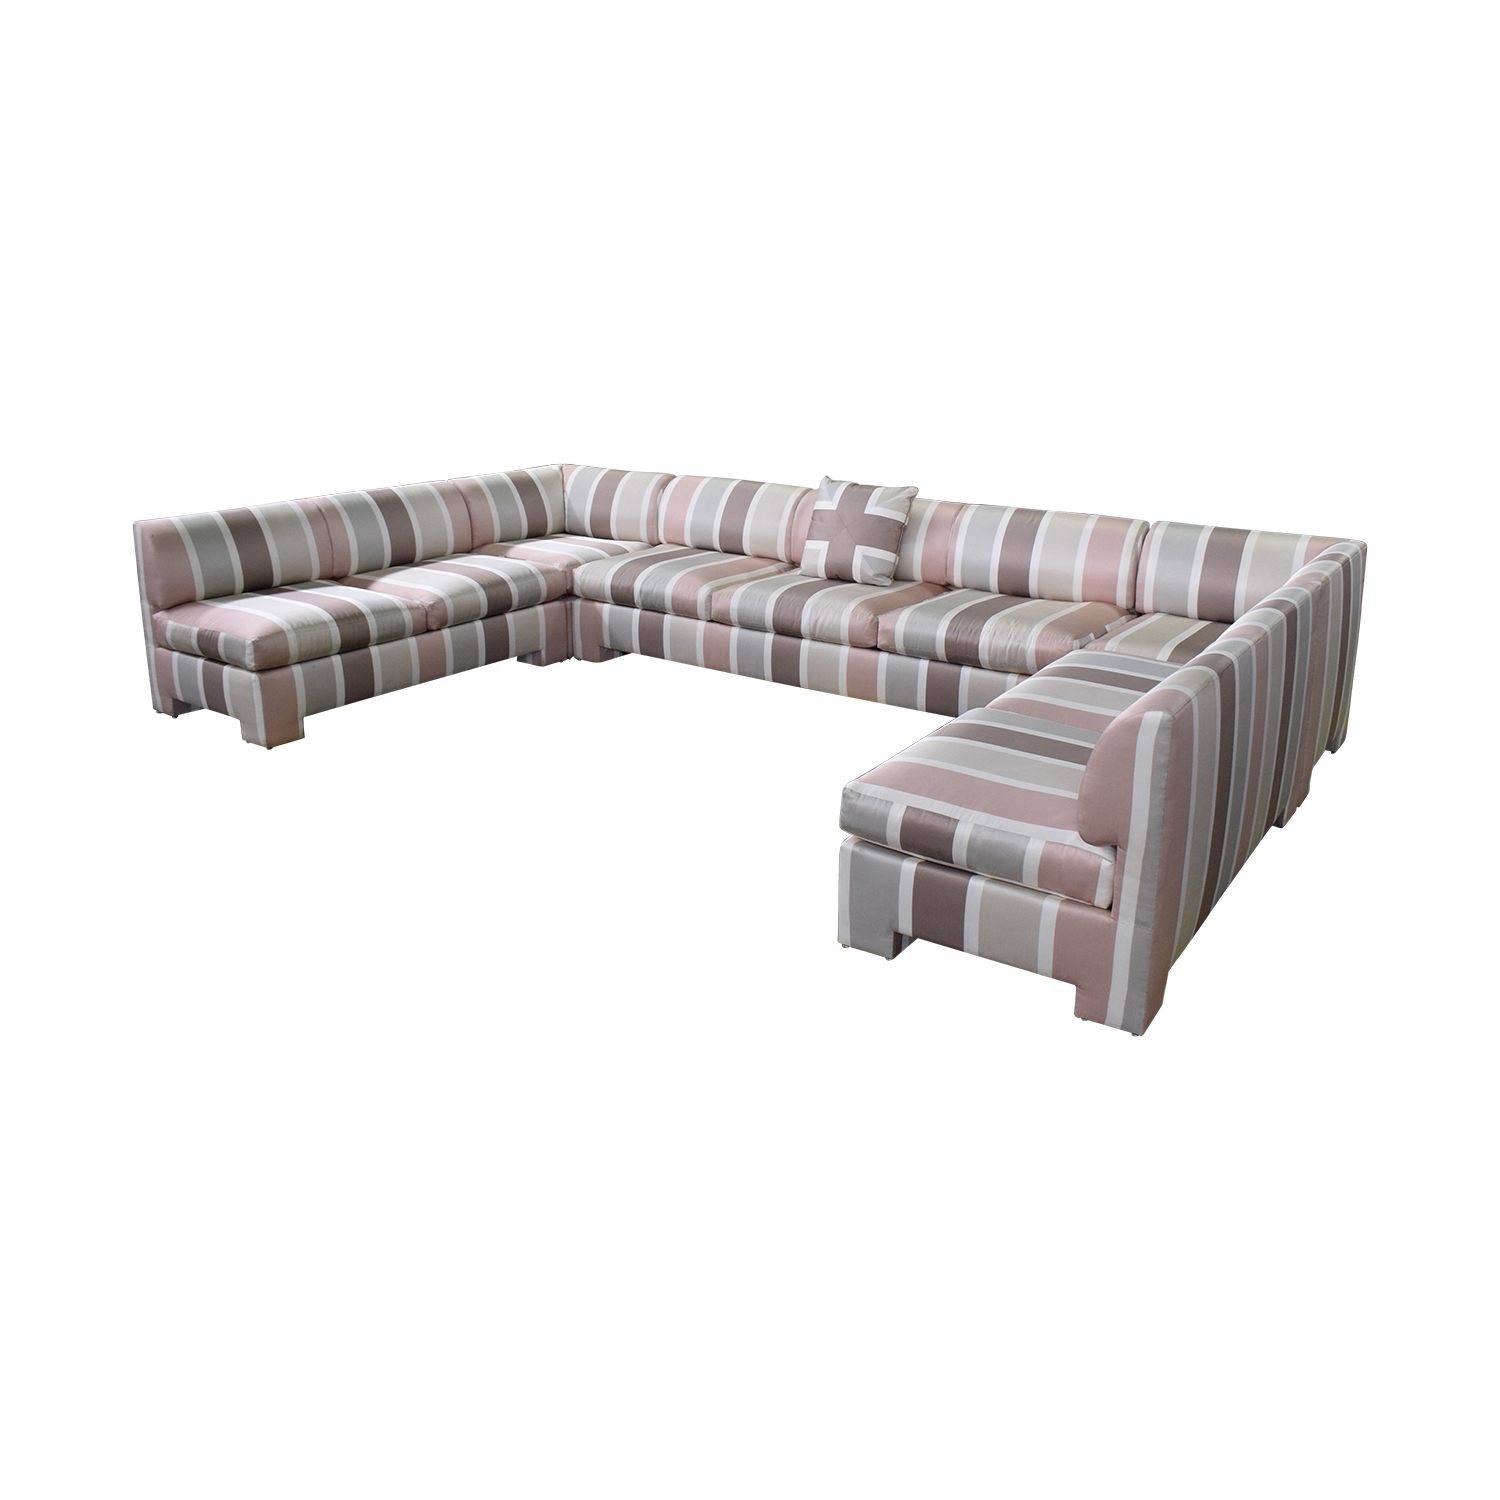 shop  Custom Pink Striped Sectional Sofa online